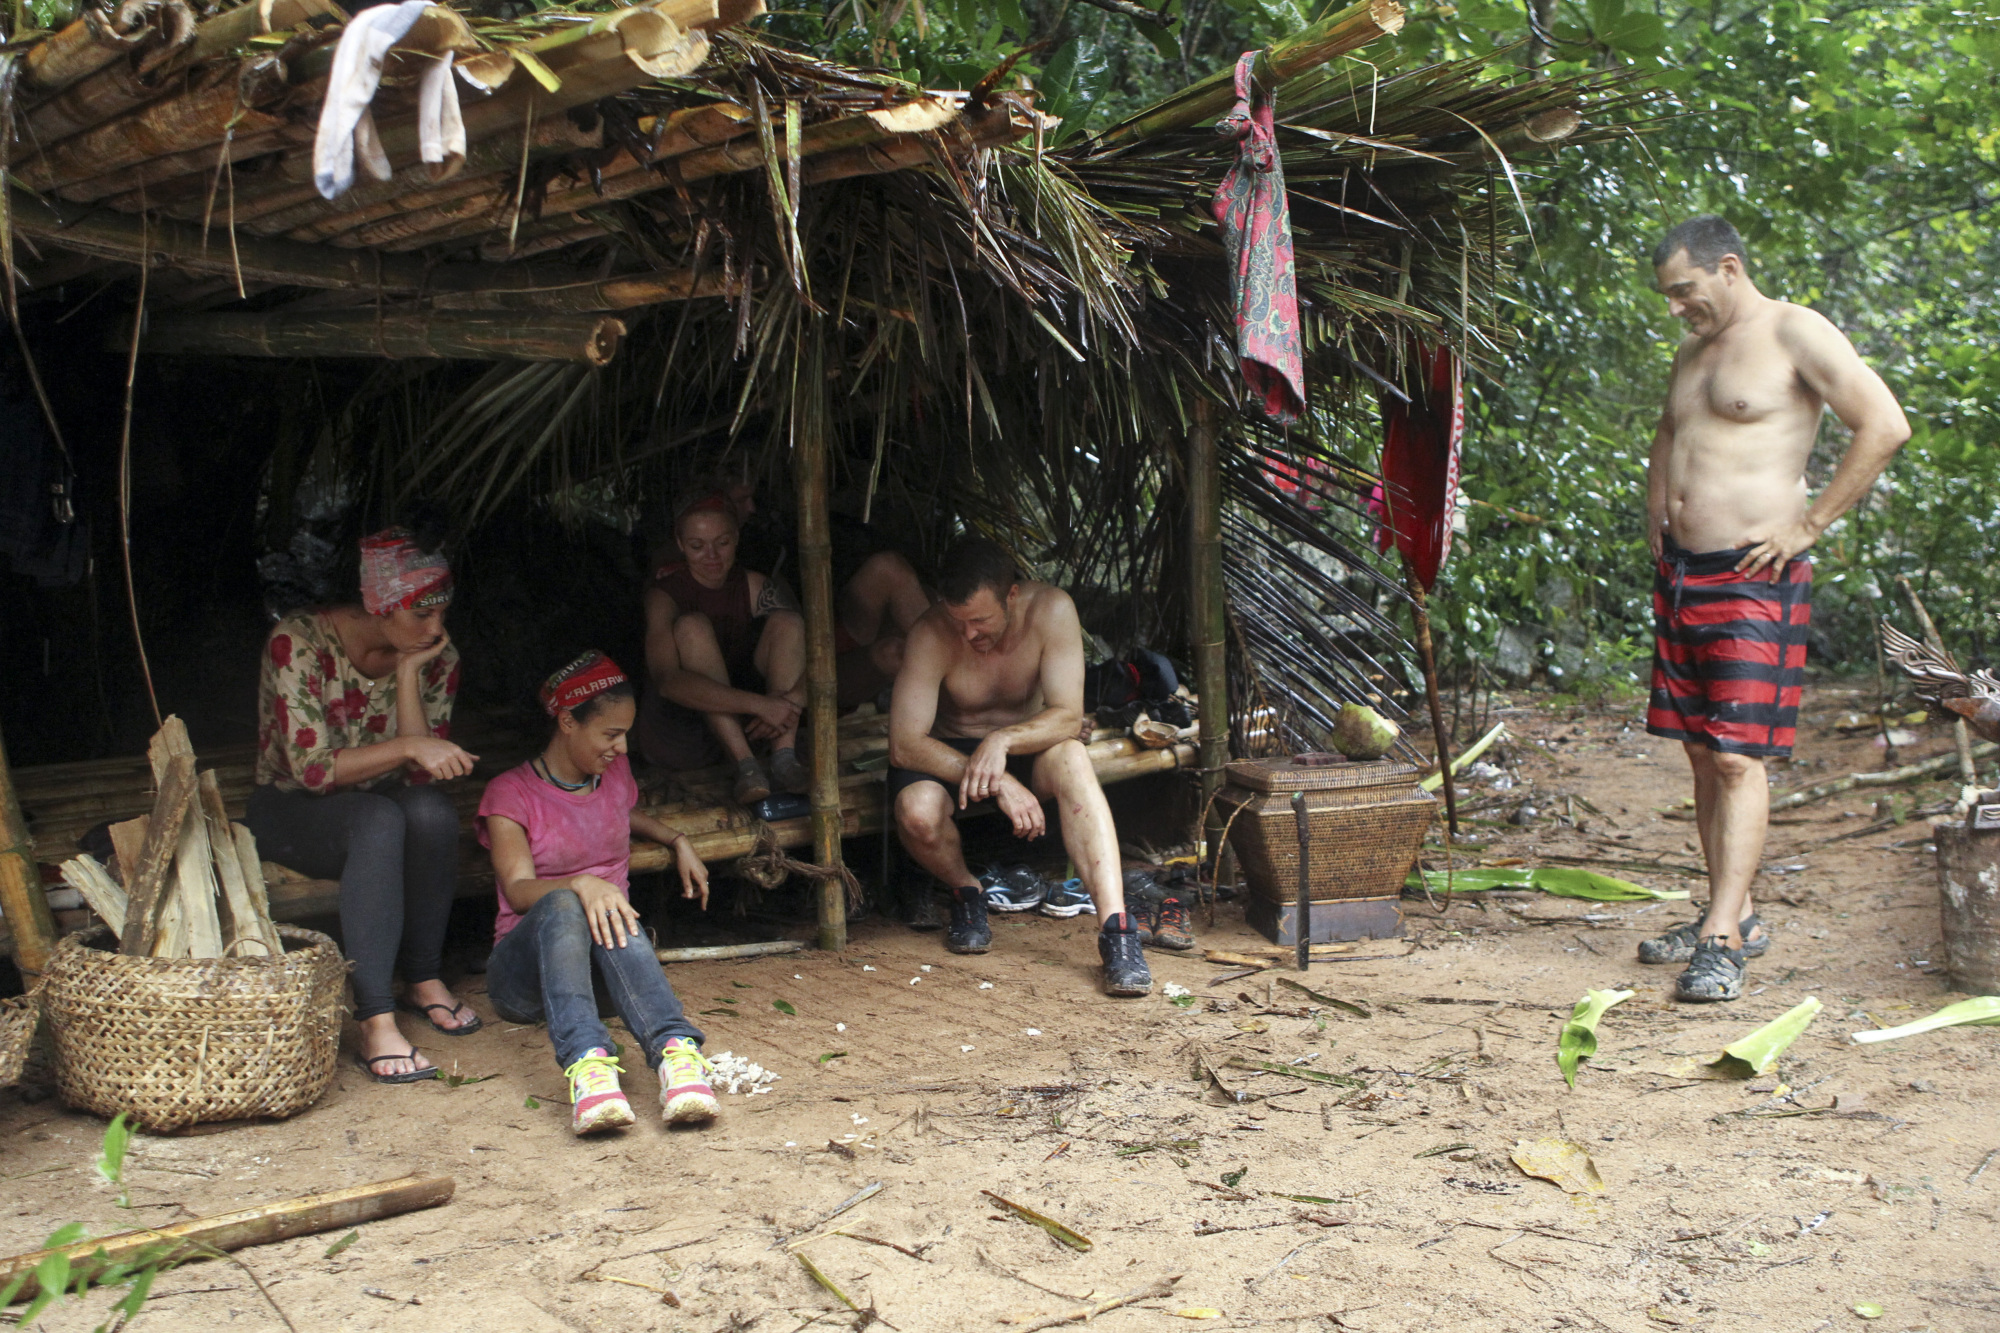 The Kalabaw Tribe